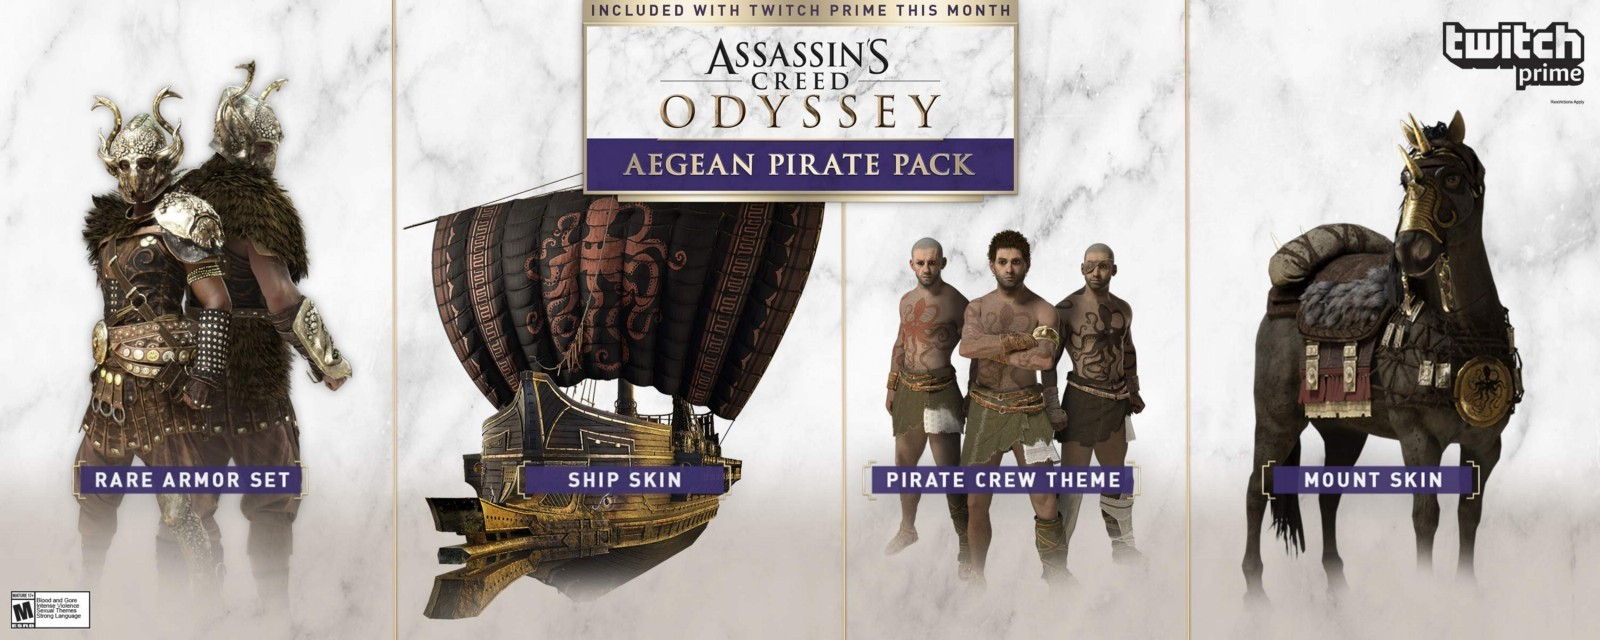 Twitch Prime Assassin's Creed Odyssey Aegean Pirate DLC